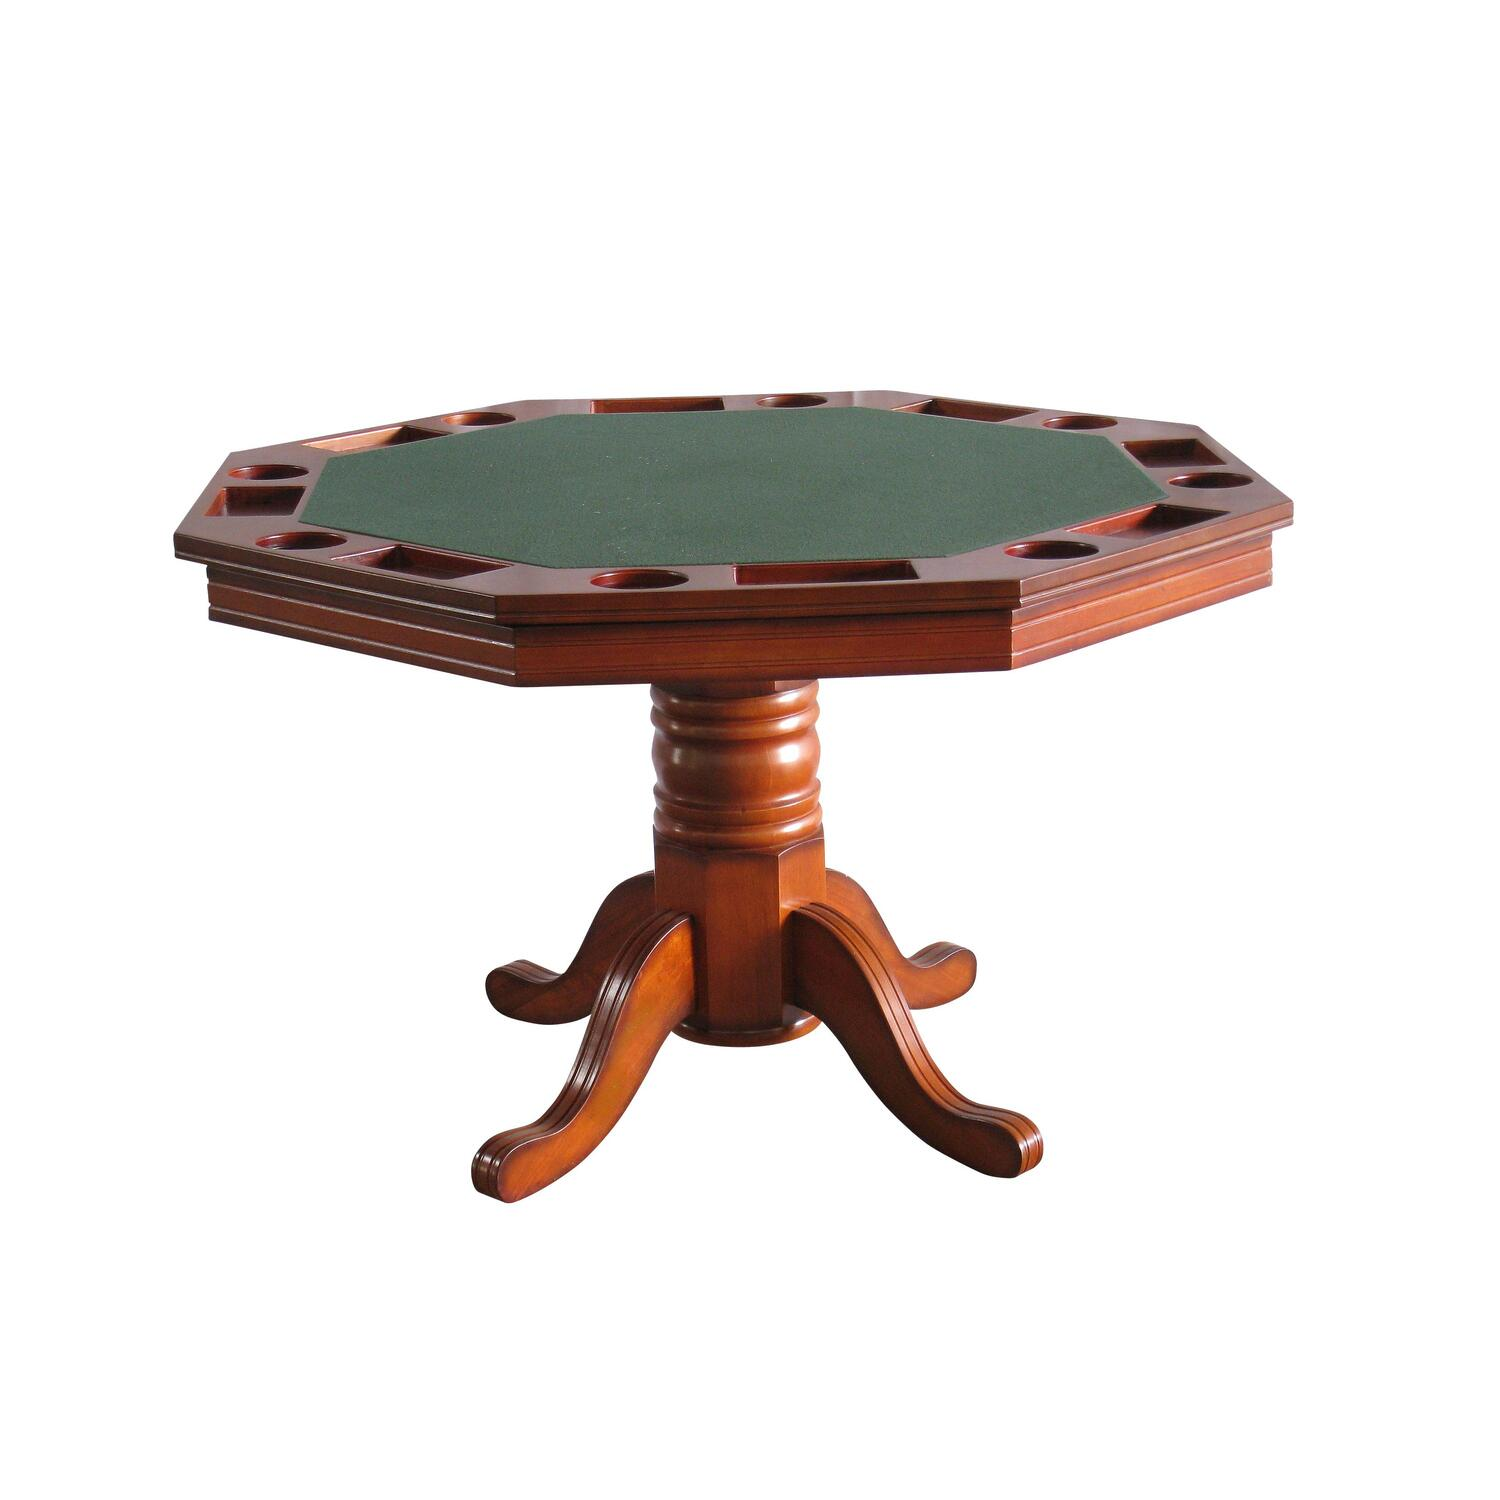 Fish and game table boraam minnesota game table by oj for How to play fish table game